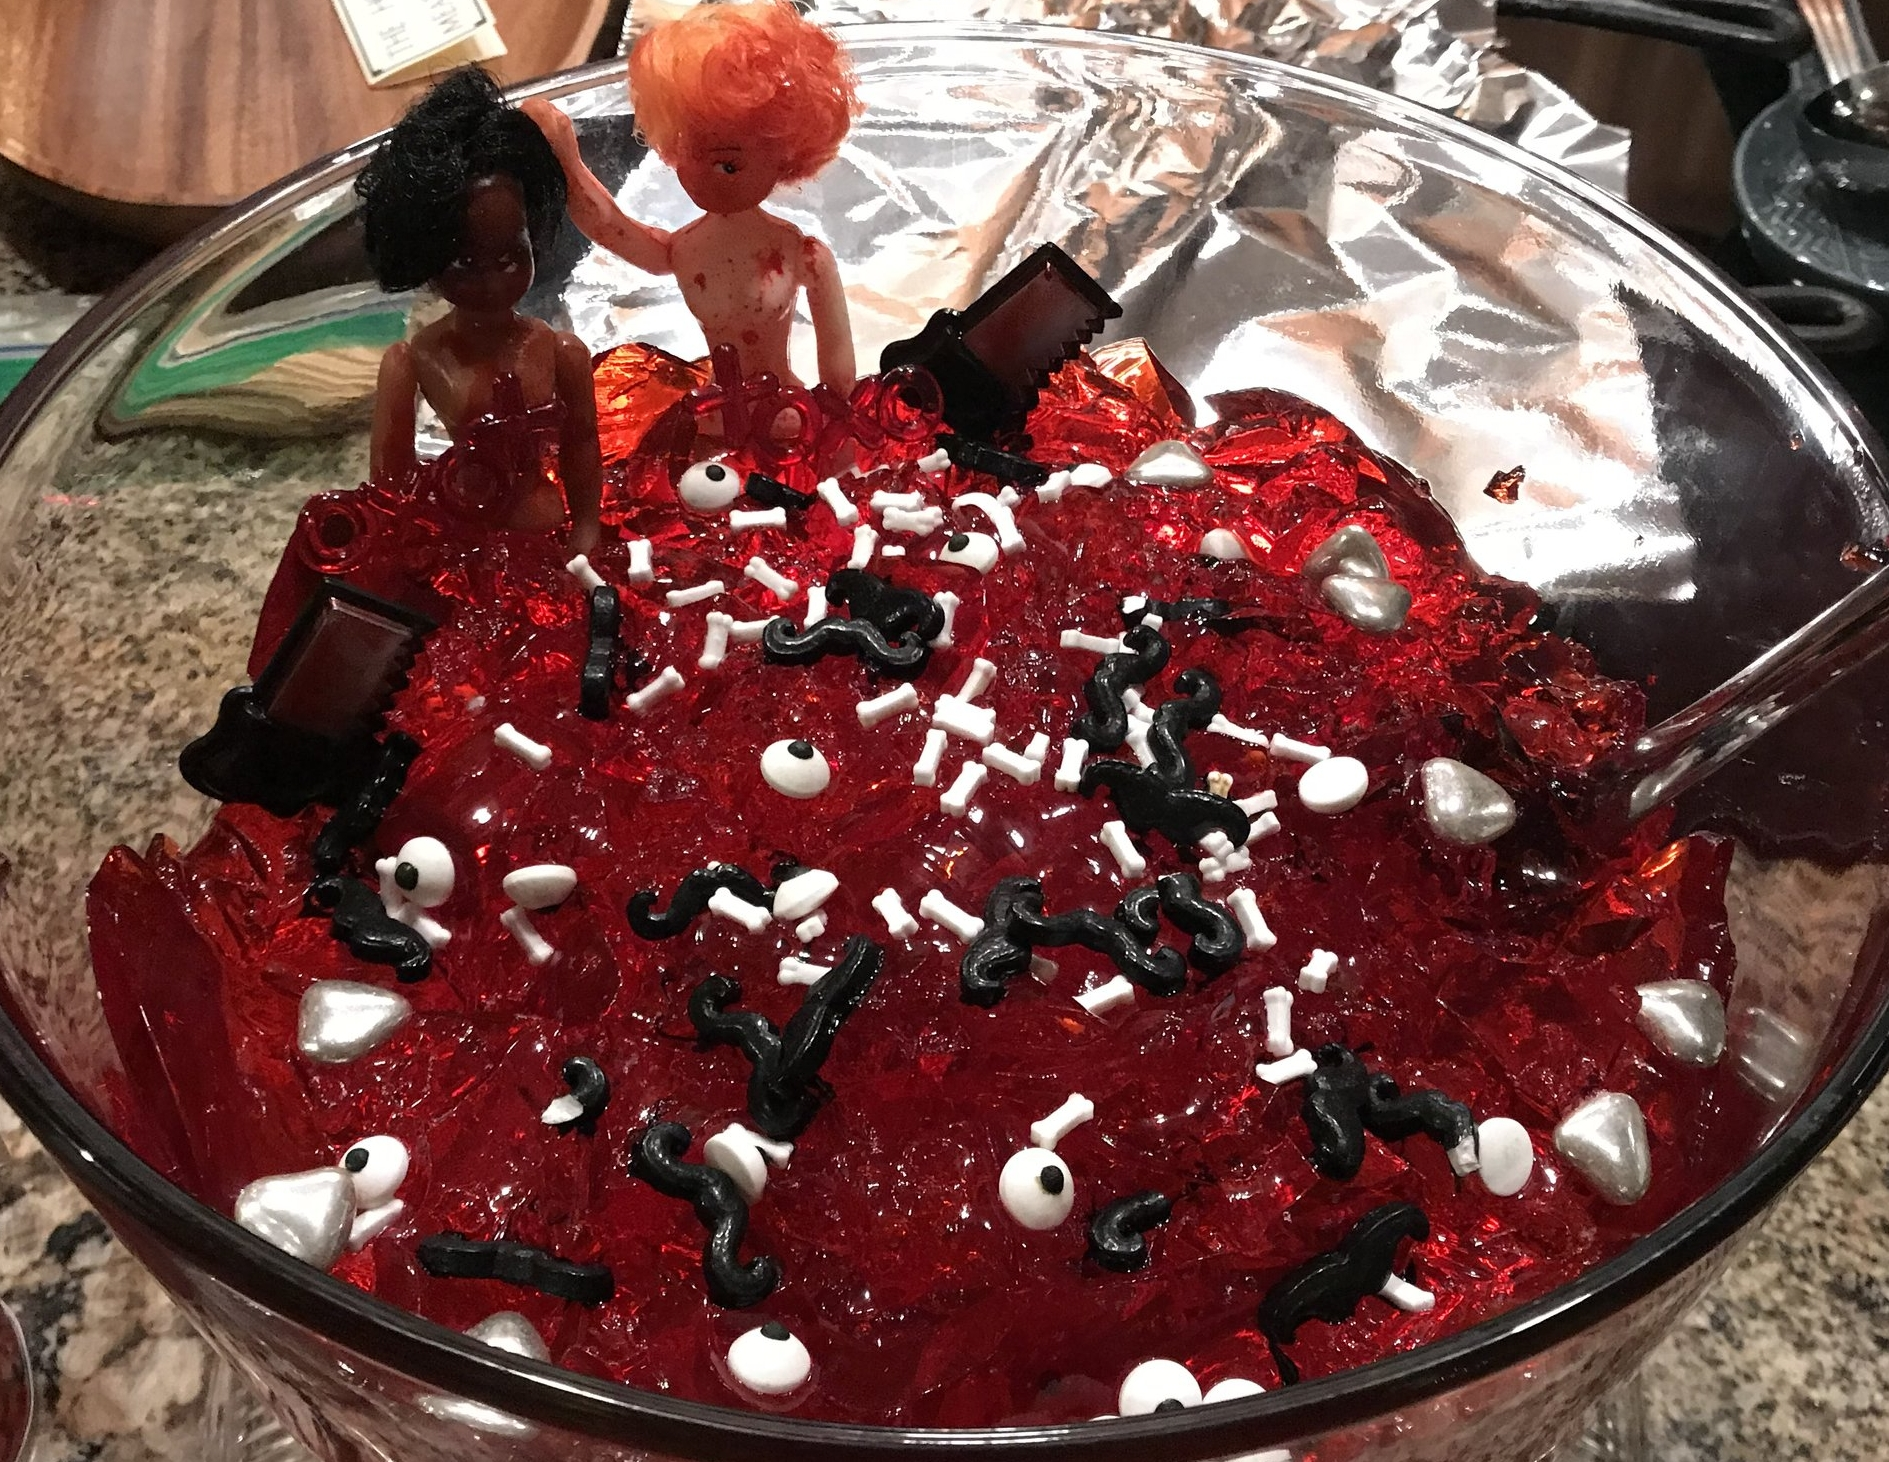 mustaches, bones, eyeballs and silver hearts adorned the red gelatin.  Along with two bloody dolls and hand weapons.